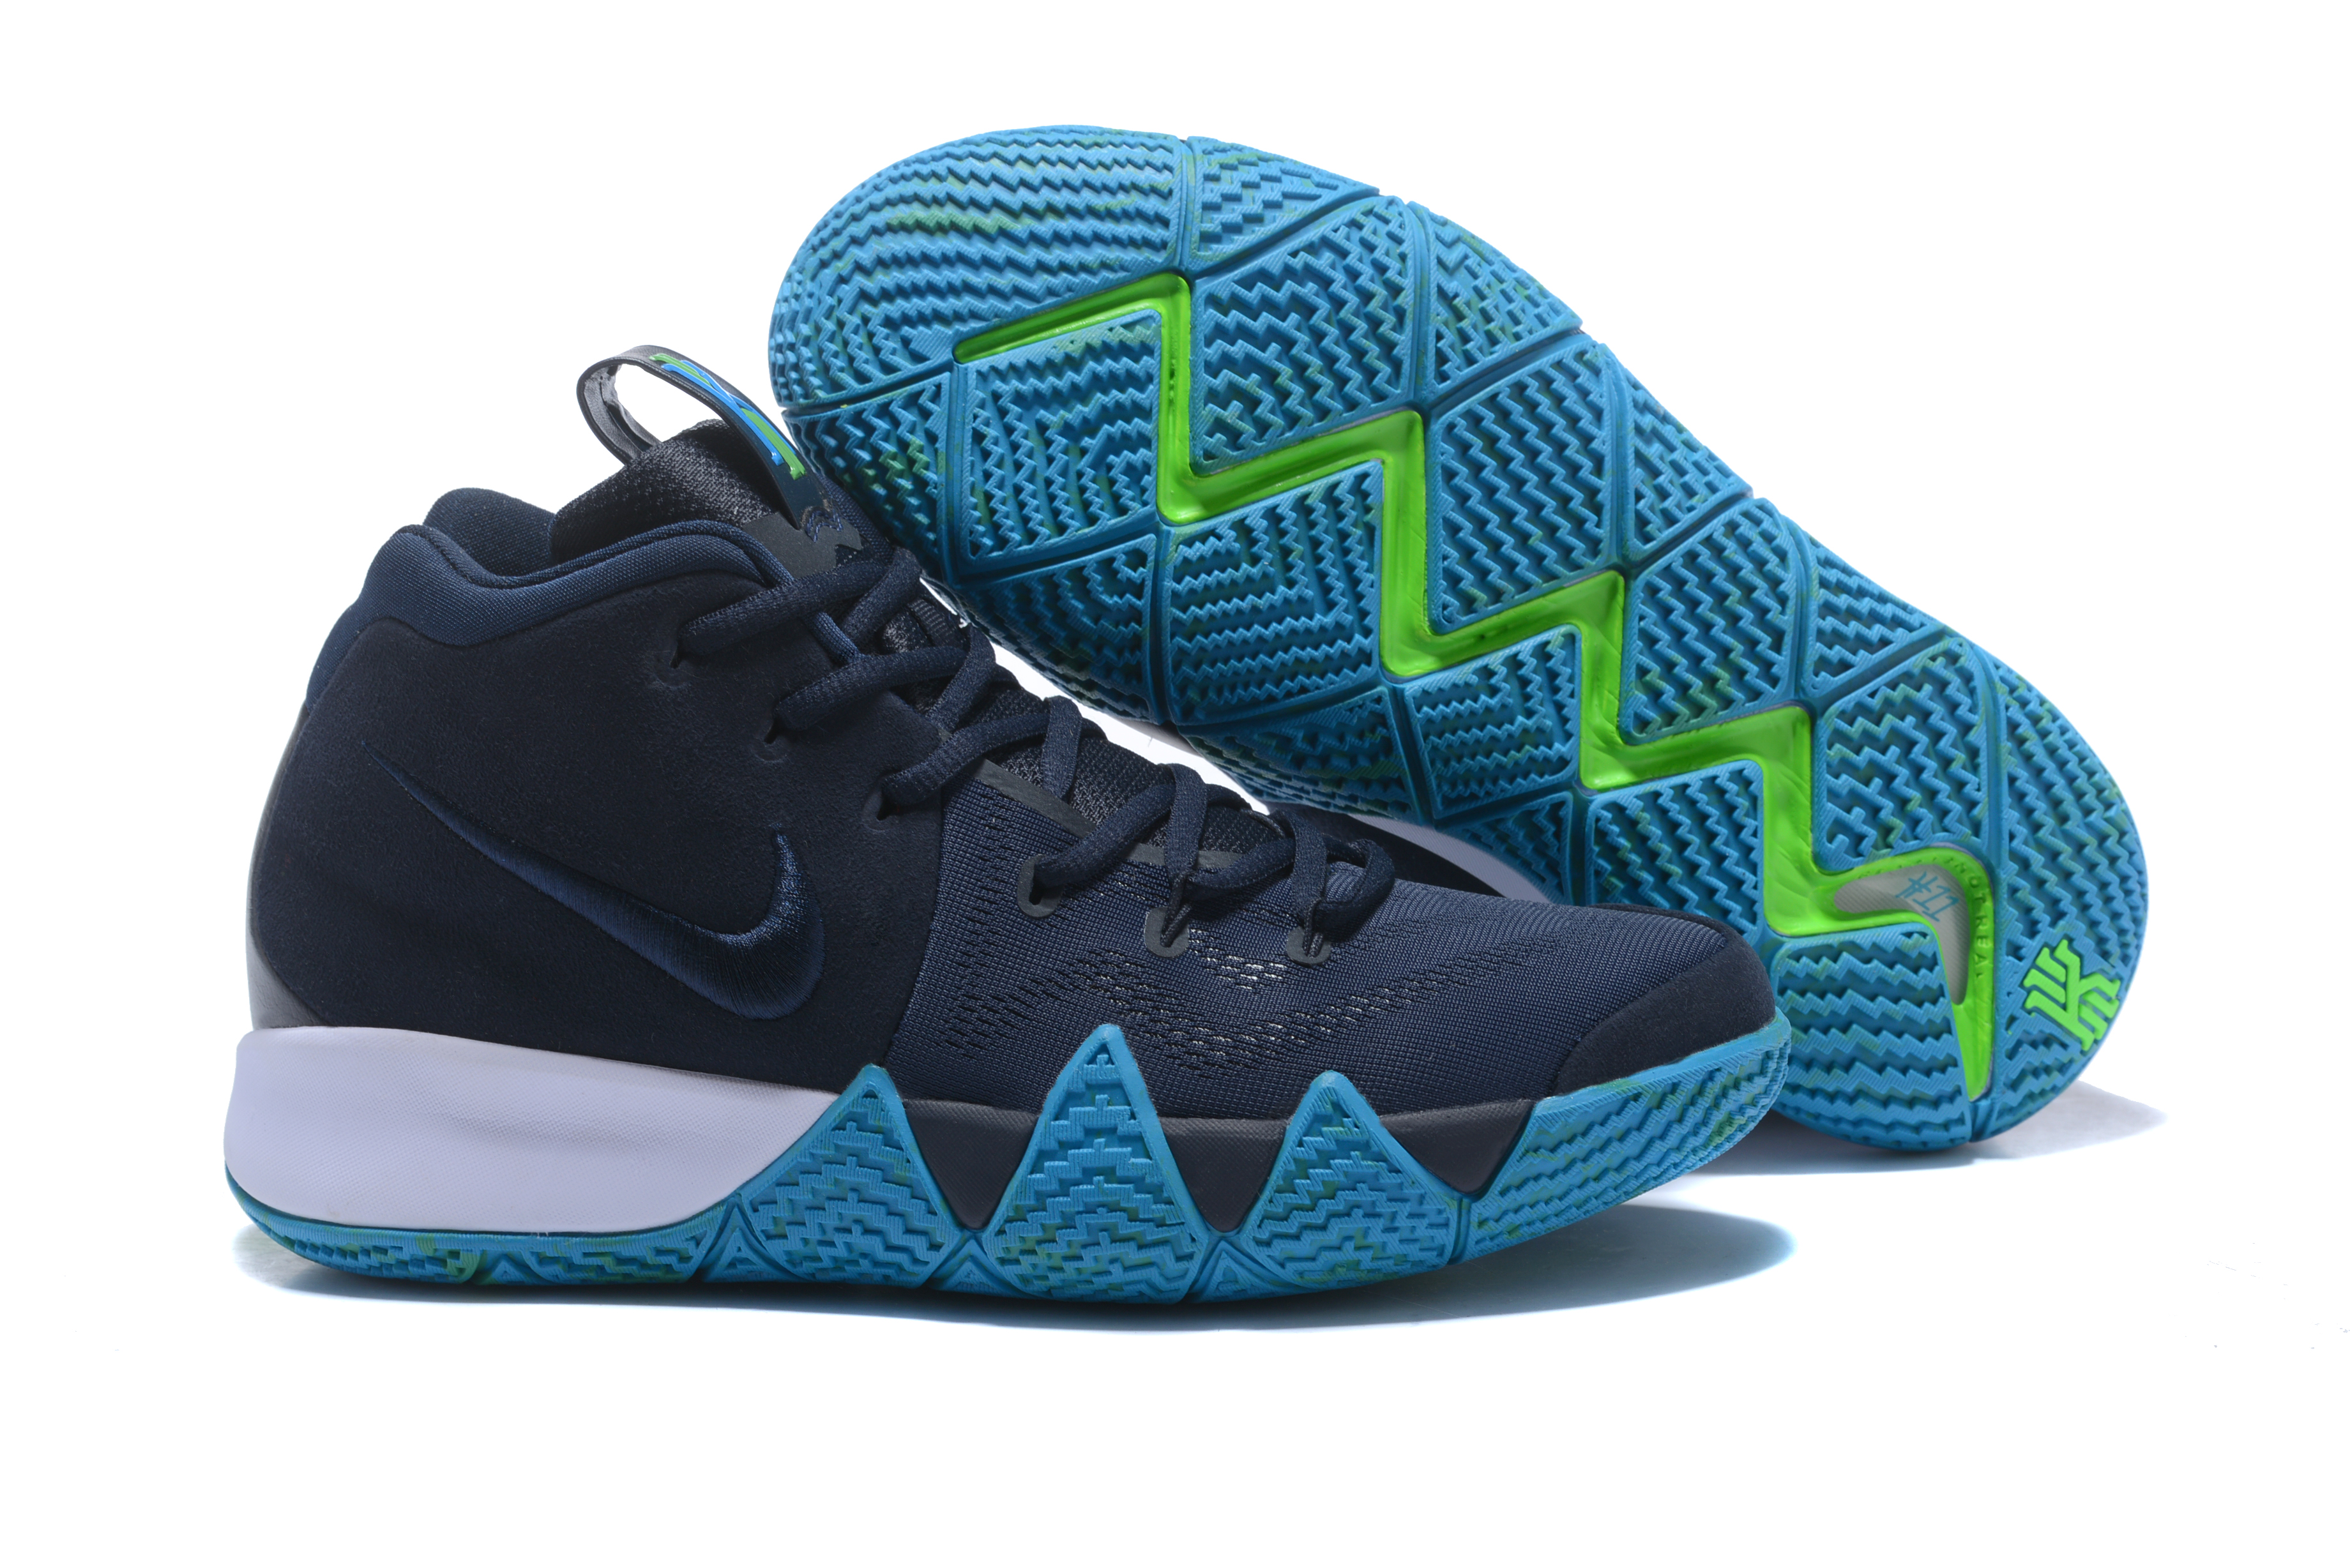 2017 Nike Kyrie 4 Dark Blue Jade Basketball Shoes